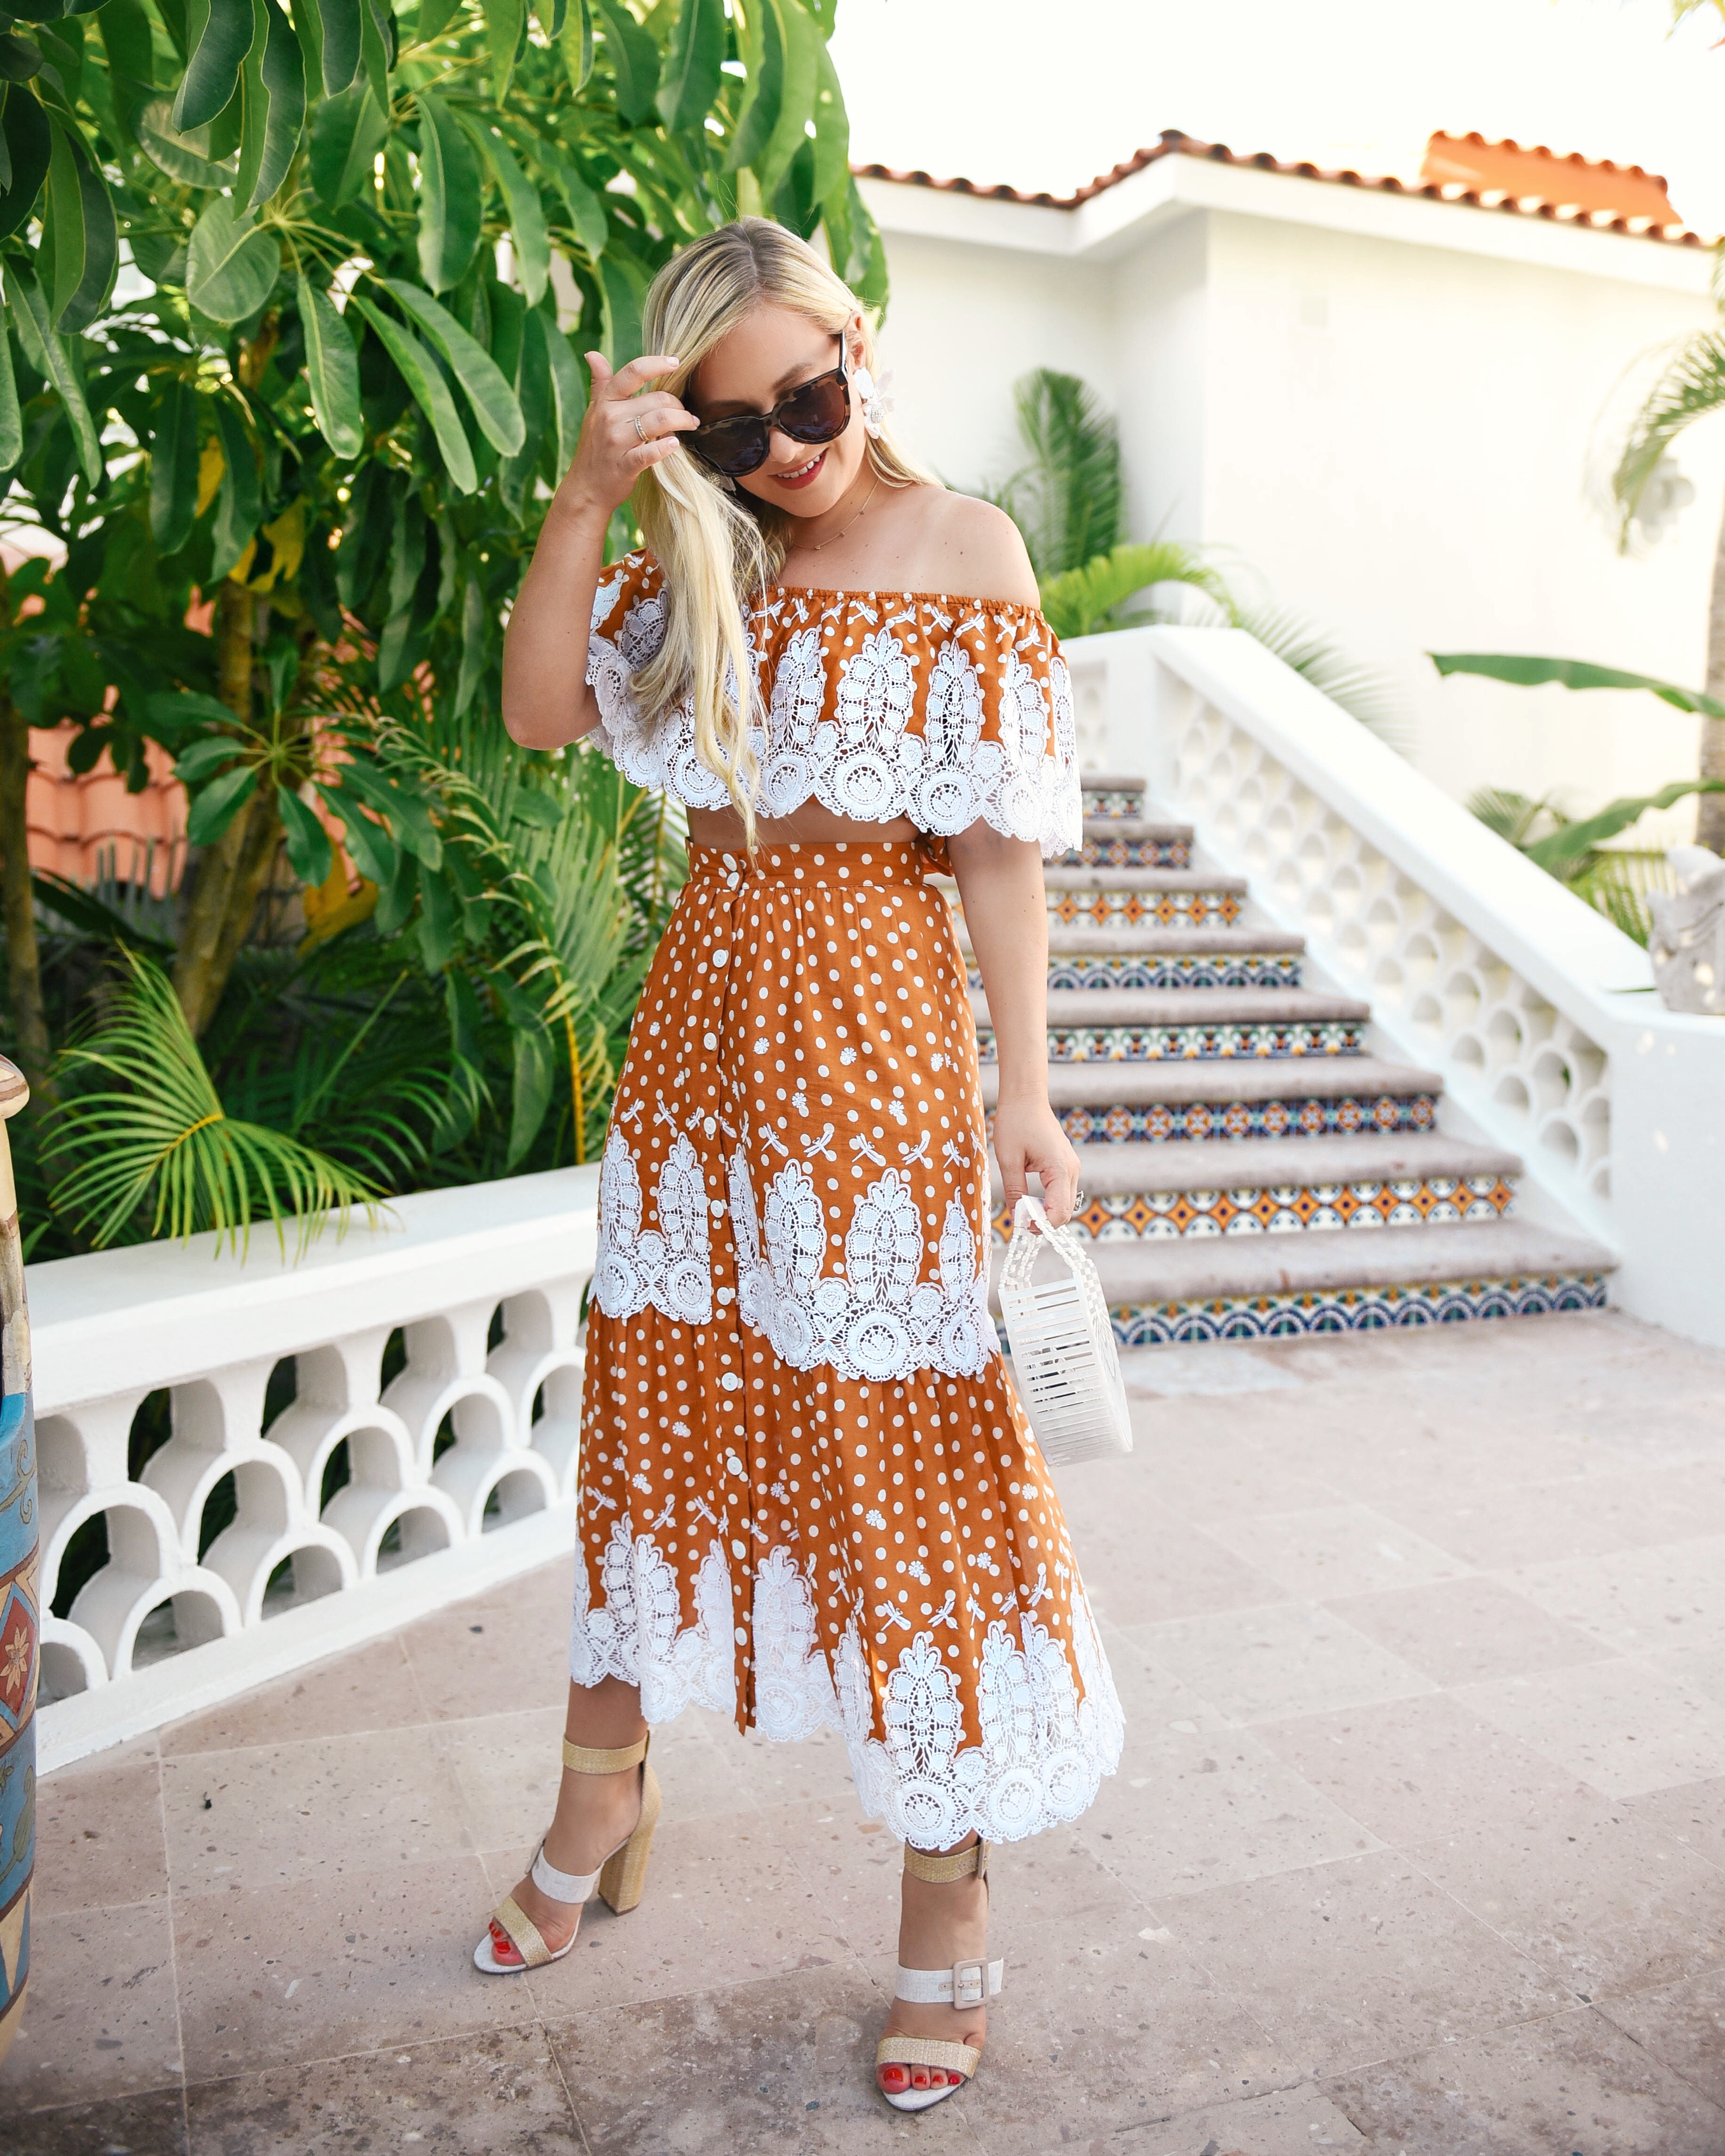 Miguelina-Shopbop-Matching-Set-Lo-Murphy-Miguelina-Orange-Set-Lace-Dress-2